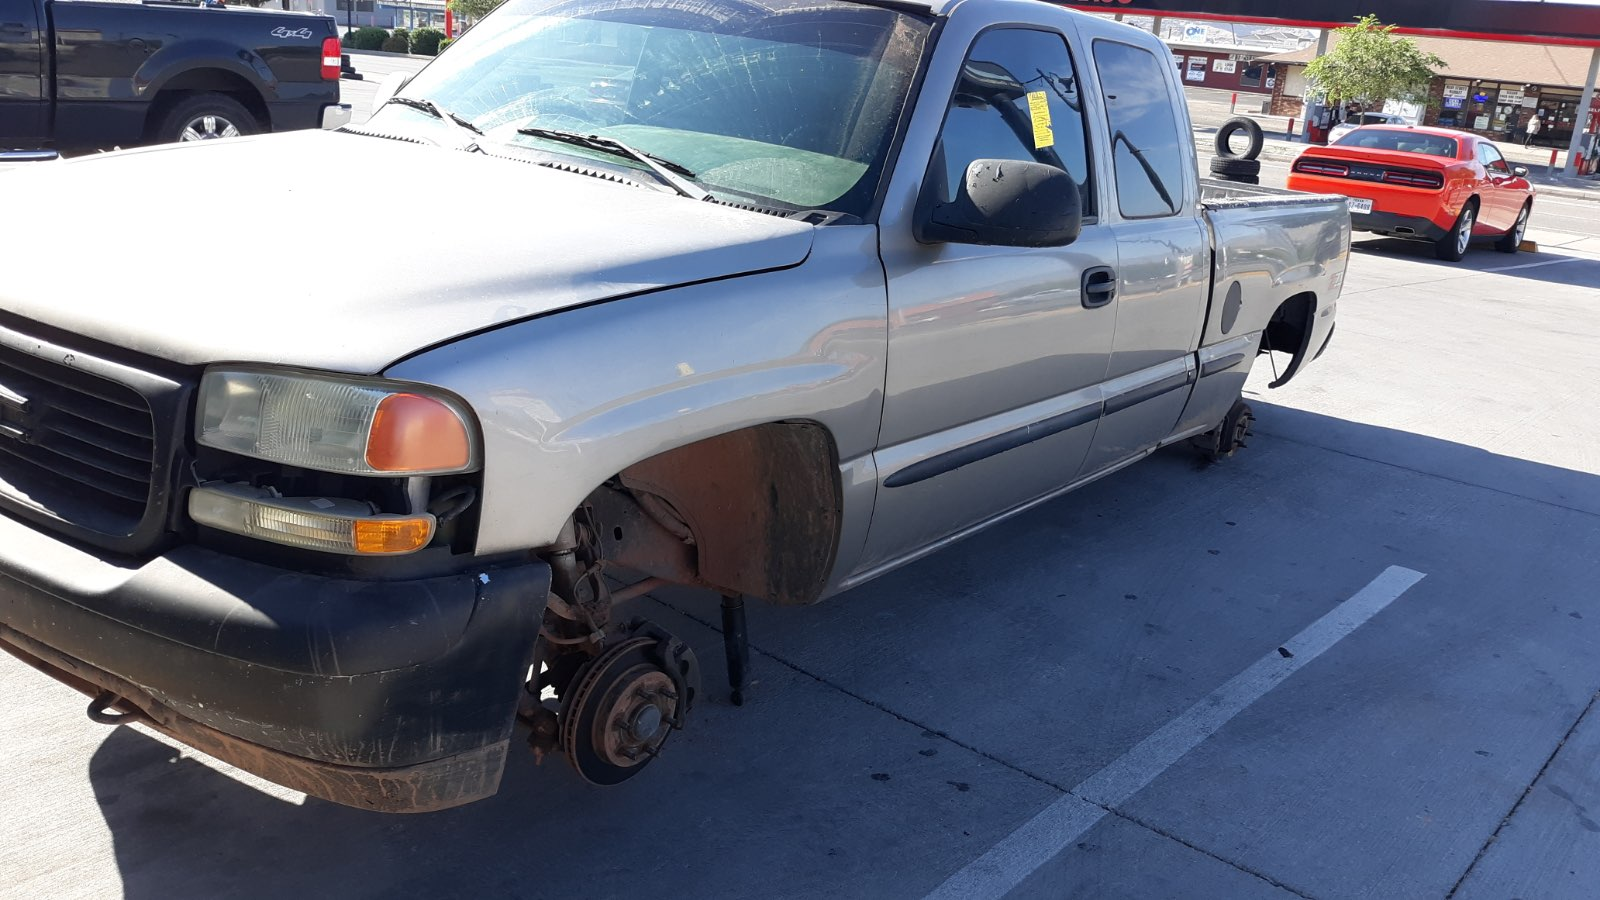 Truck Left Overnight After Service Has Tires And Wheels Stolen St George News